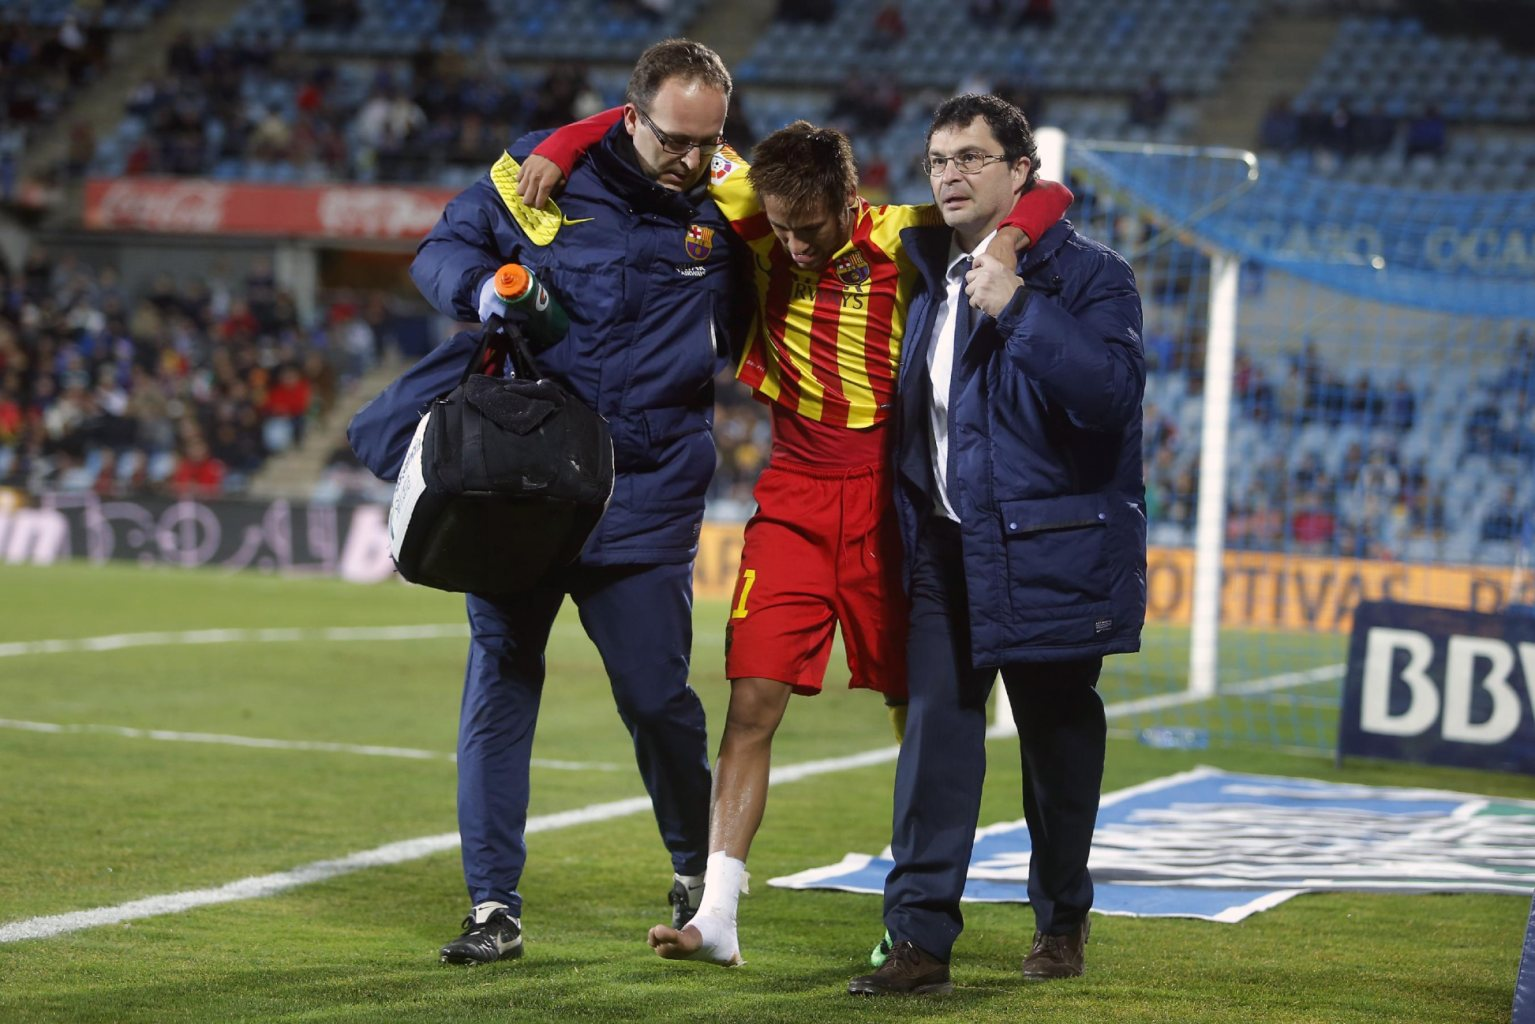 Neymar walking off the pitch after his injury, in Getafe vs Barcelona